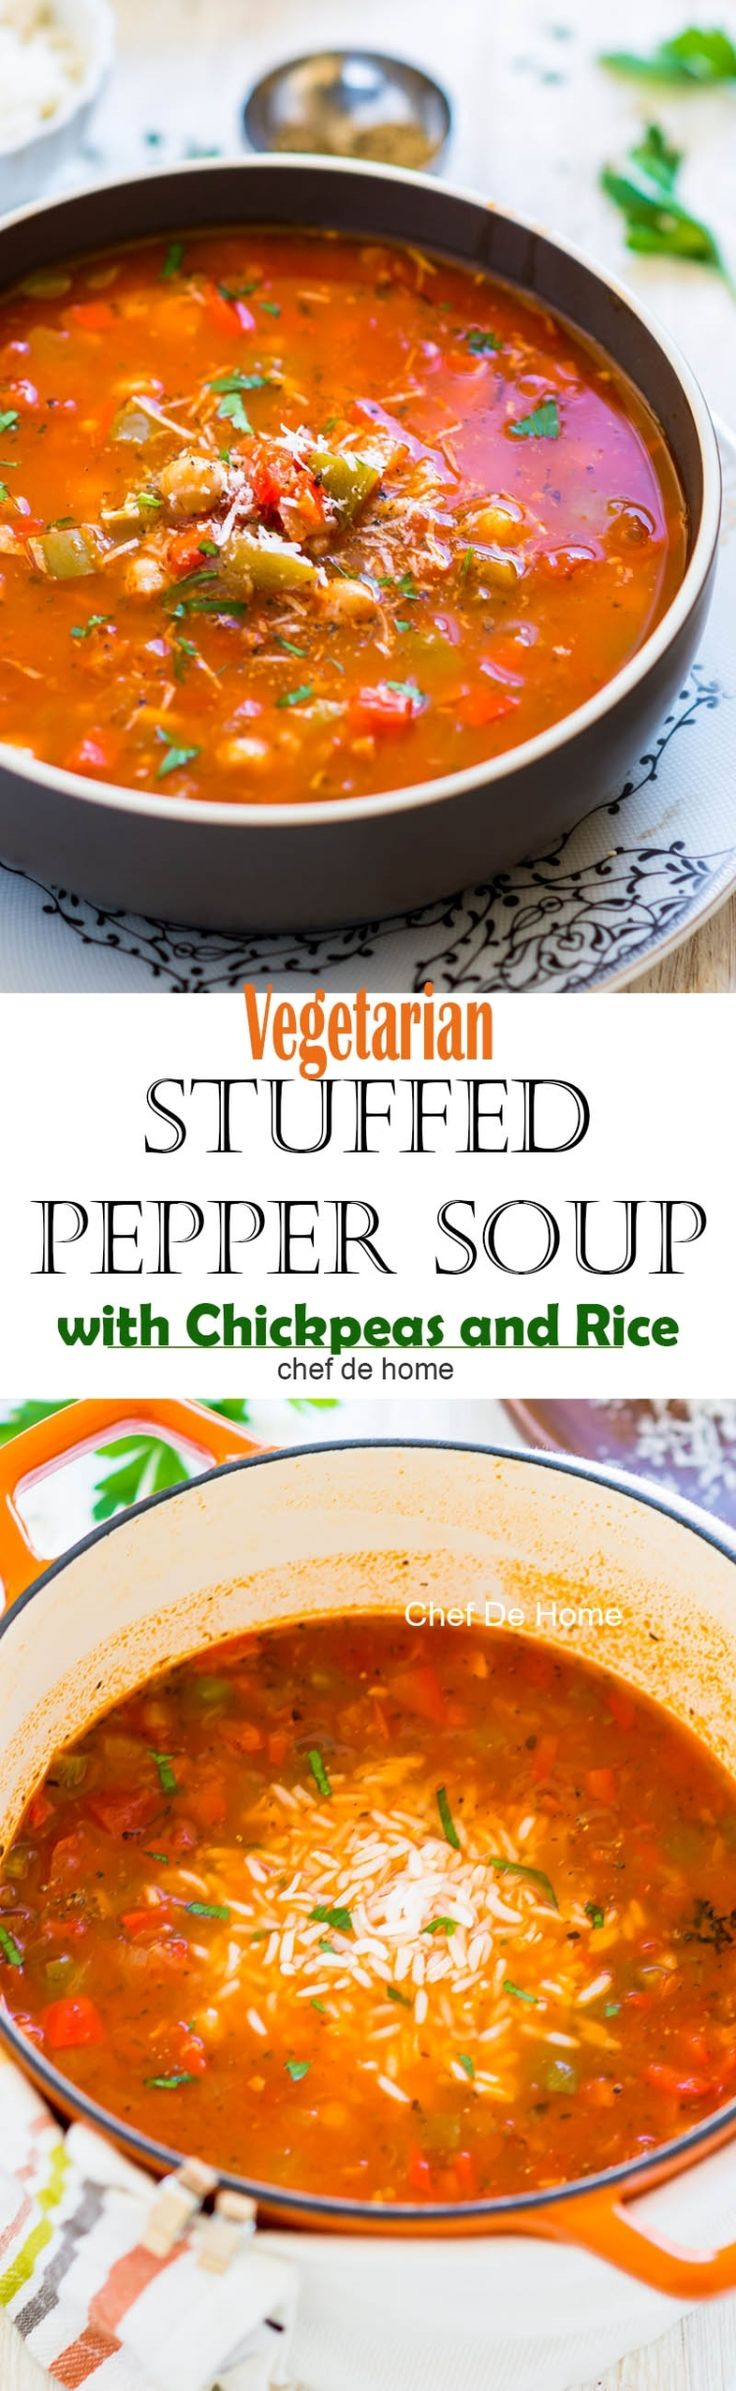 Easy homemade vegetarian stuffed pepper soup with two kind of peppers chickpeas and rice gluten free | chefdehome.com (carb free foods chicken soups)